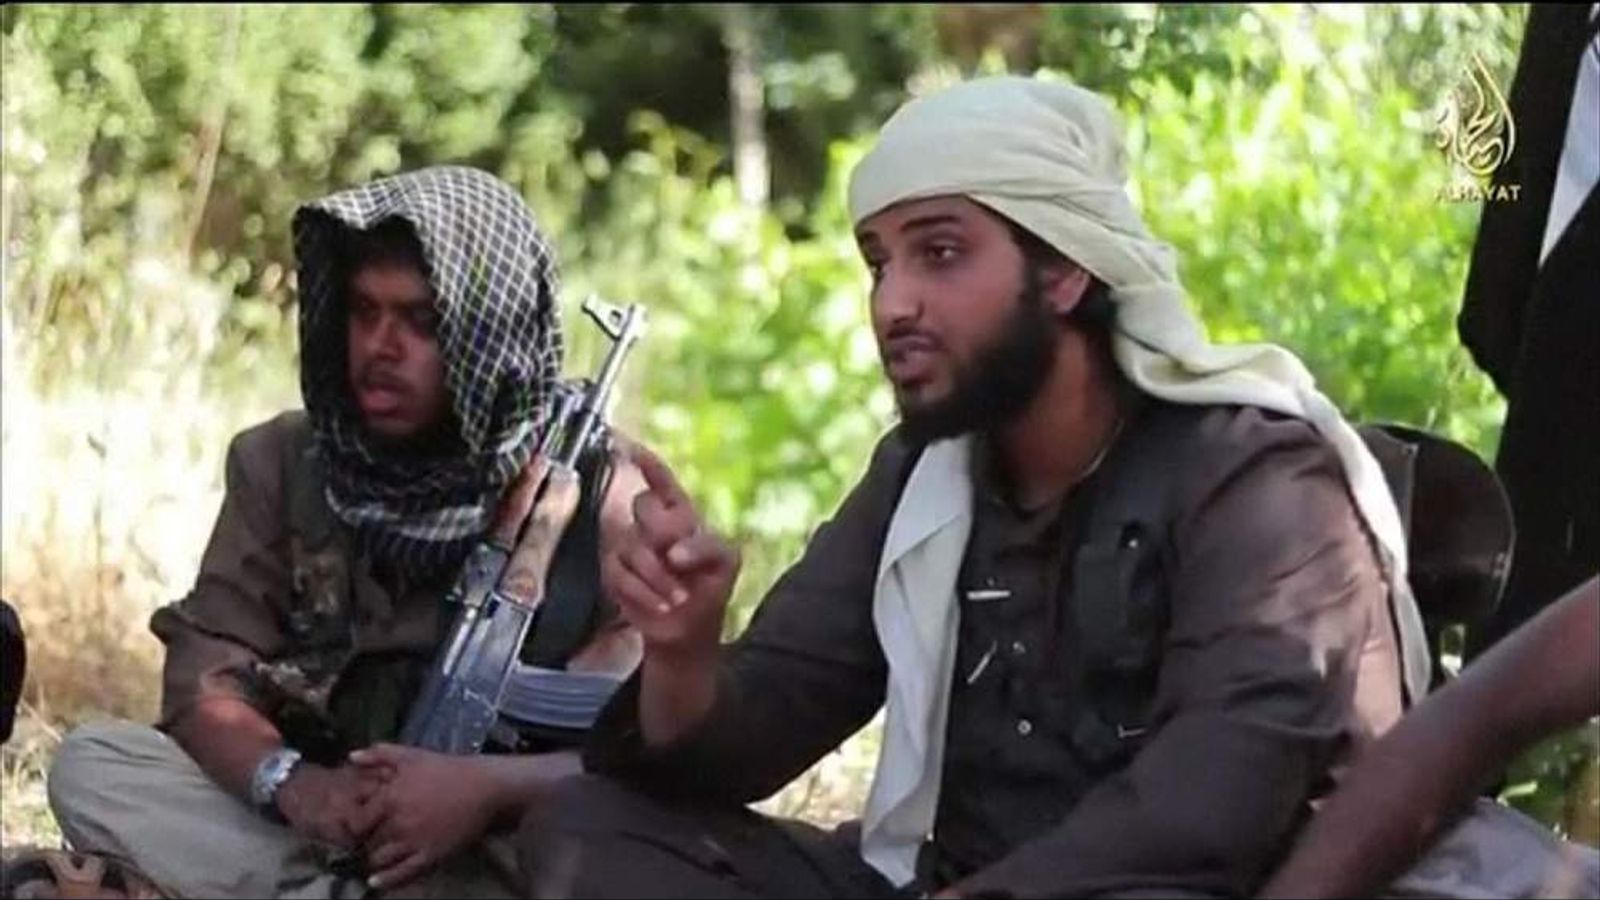 'British jihadists' video.